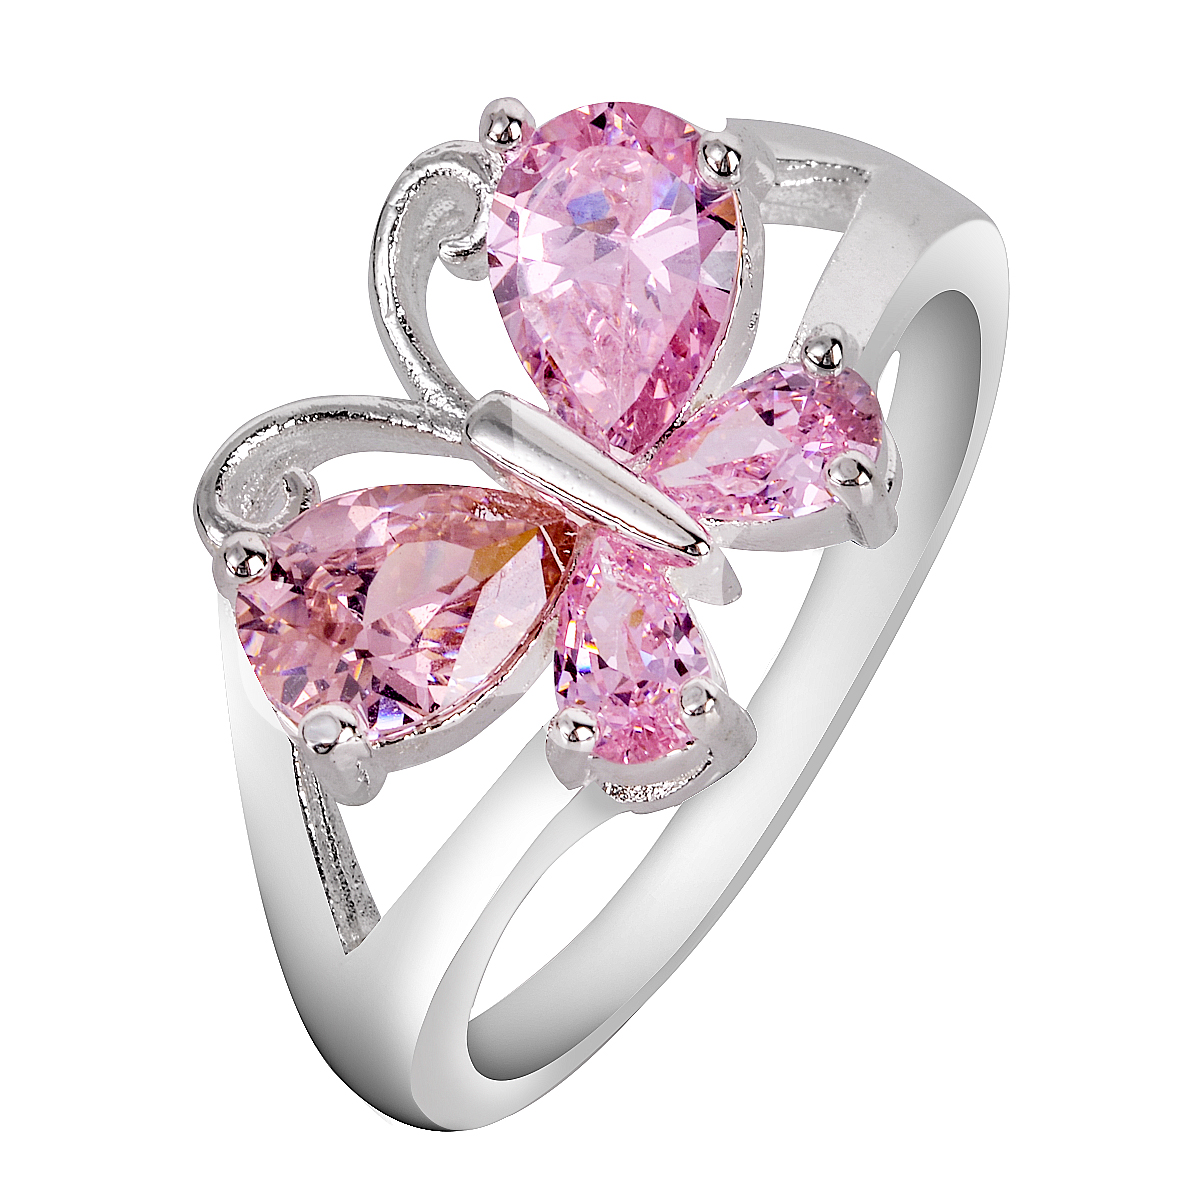 Fashion Female Jewelry Oval Stone Ring Vintage White & Pink Ring ...